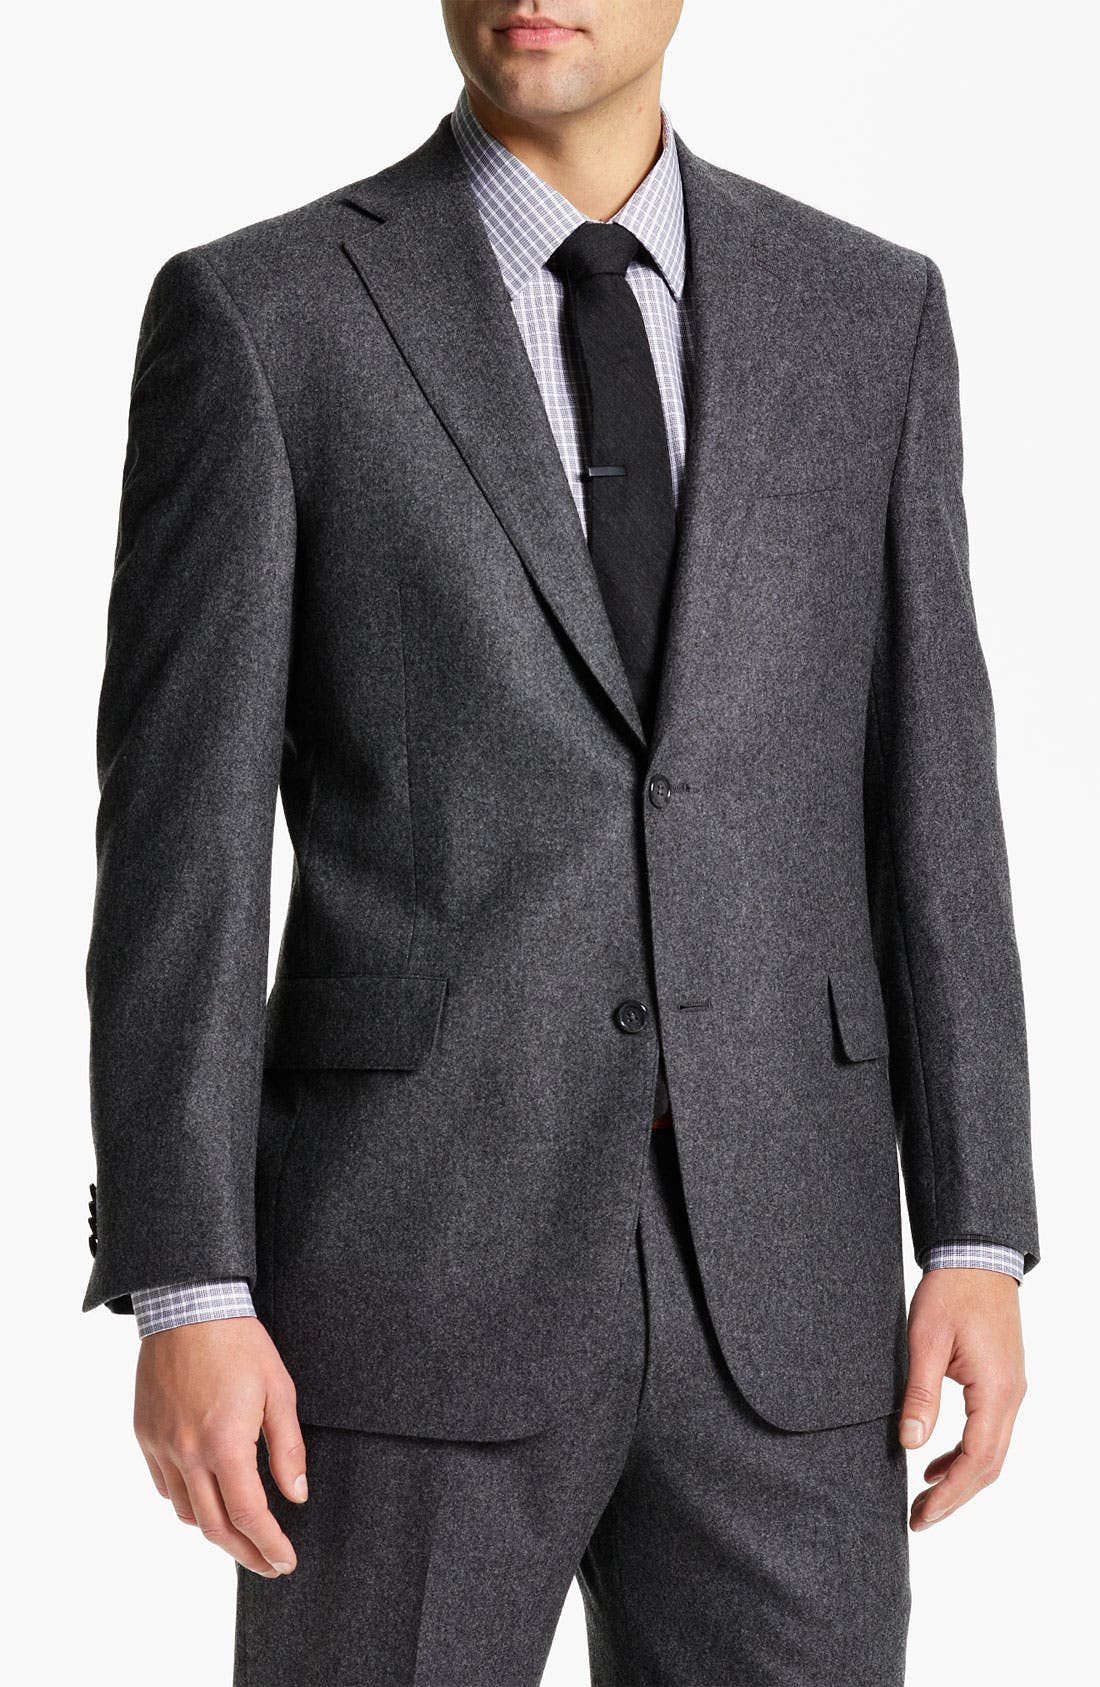 Alternate Image 1 Selected - Hart Schaffner Marx Flannel Suit